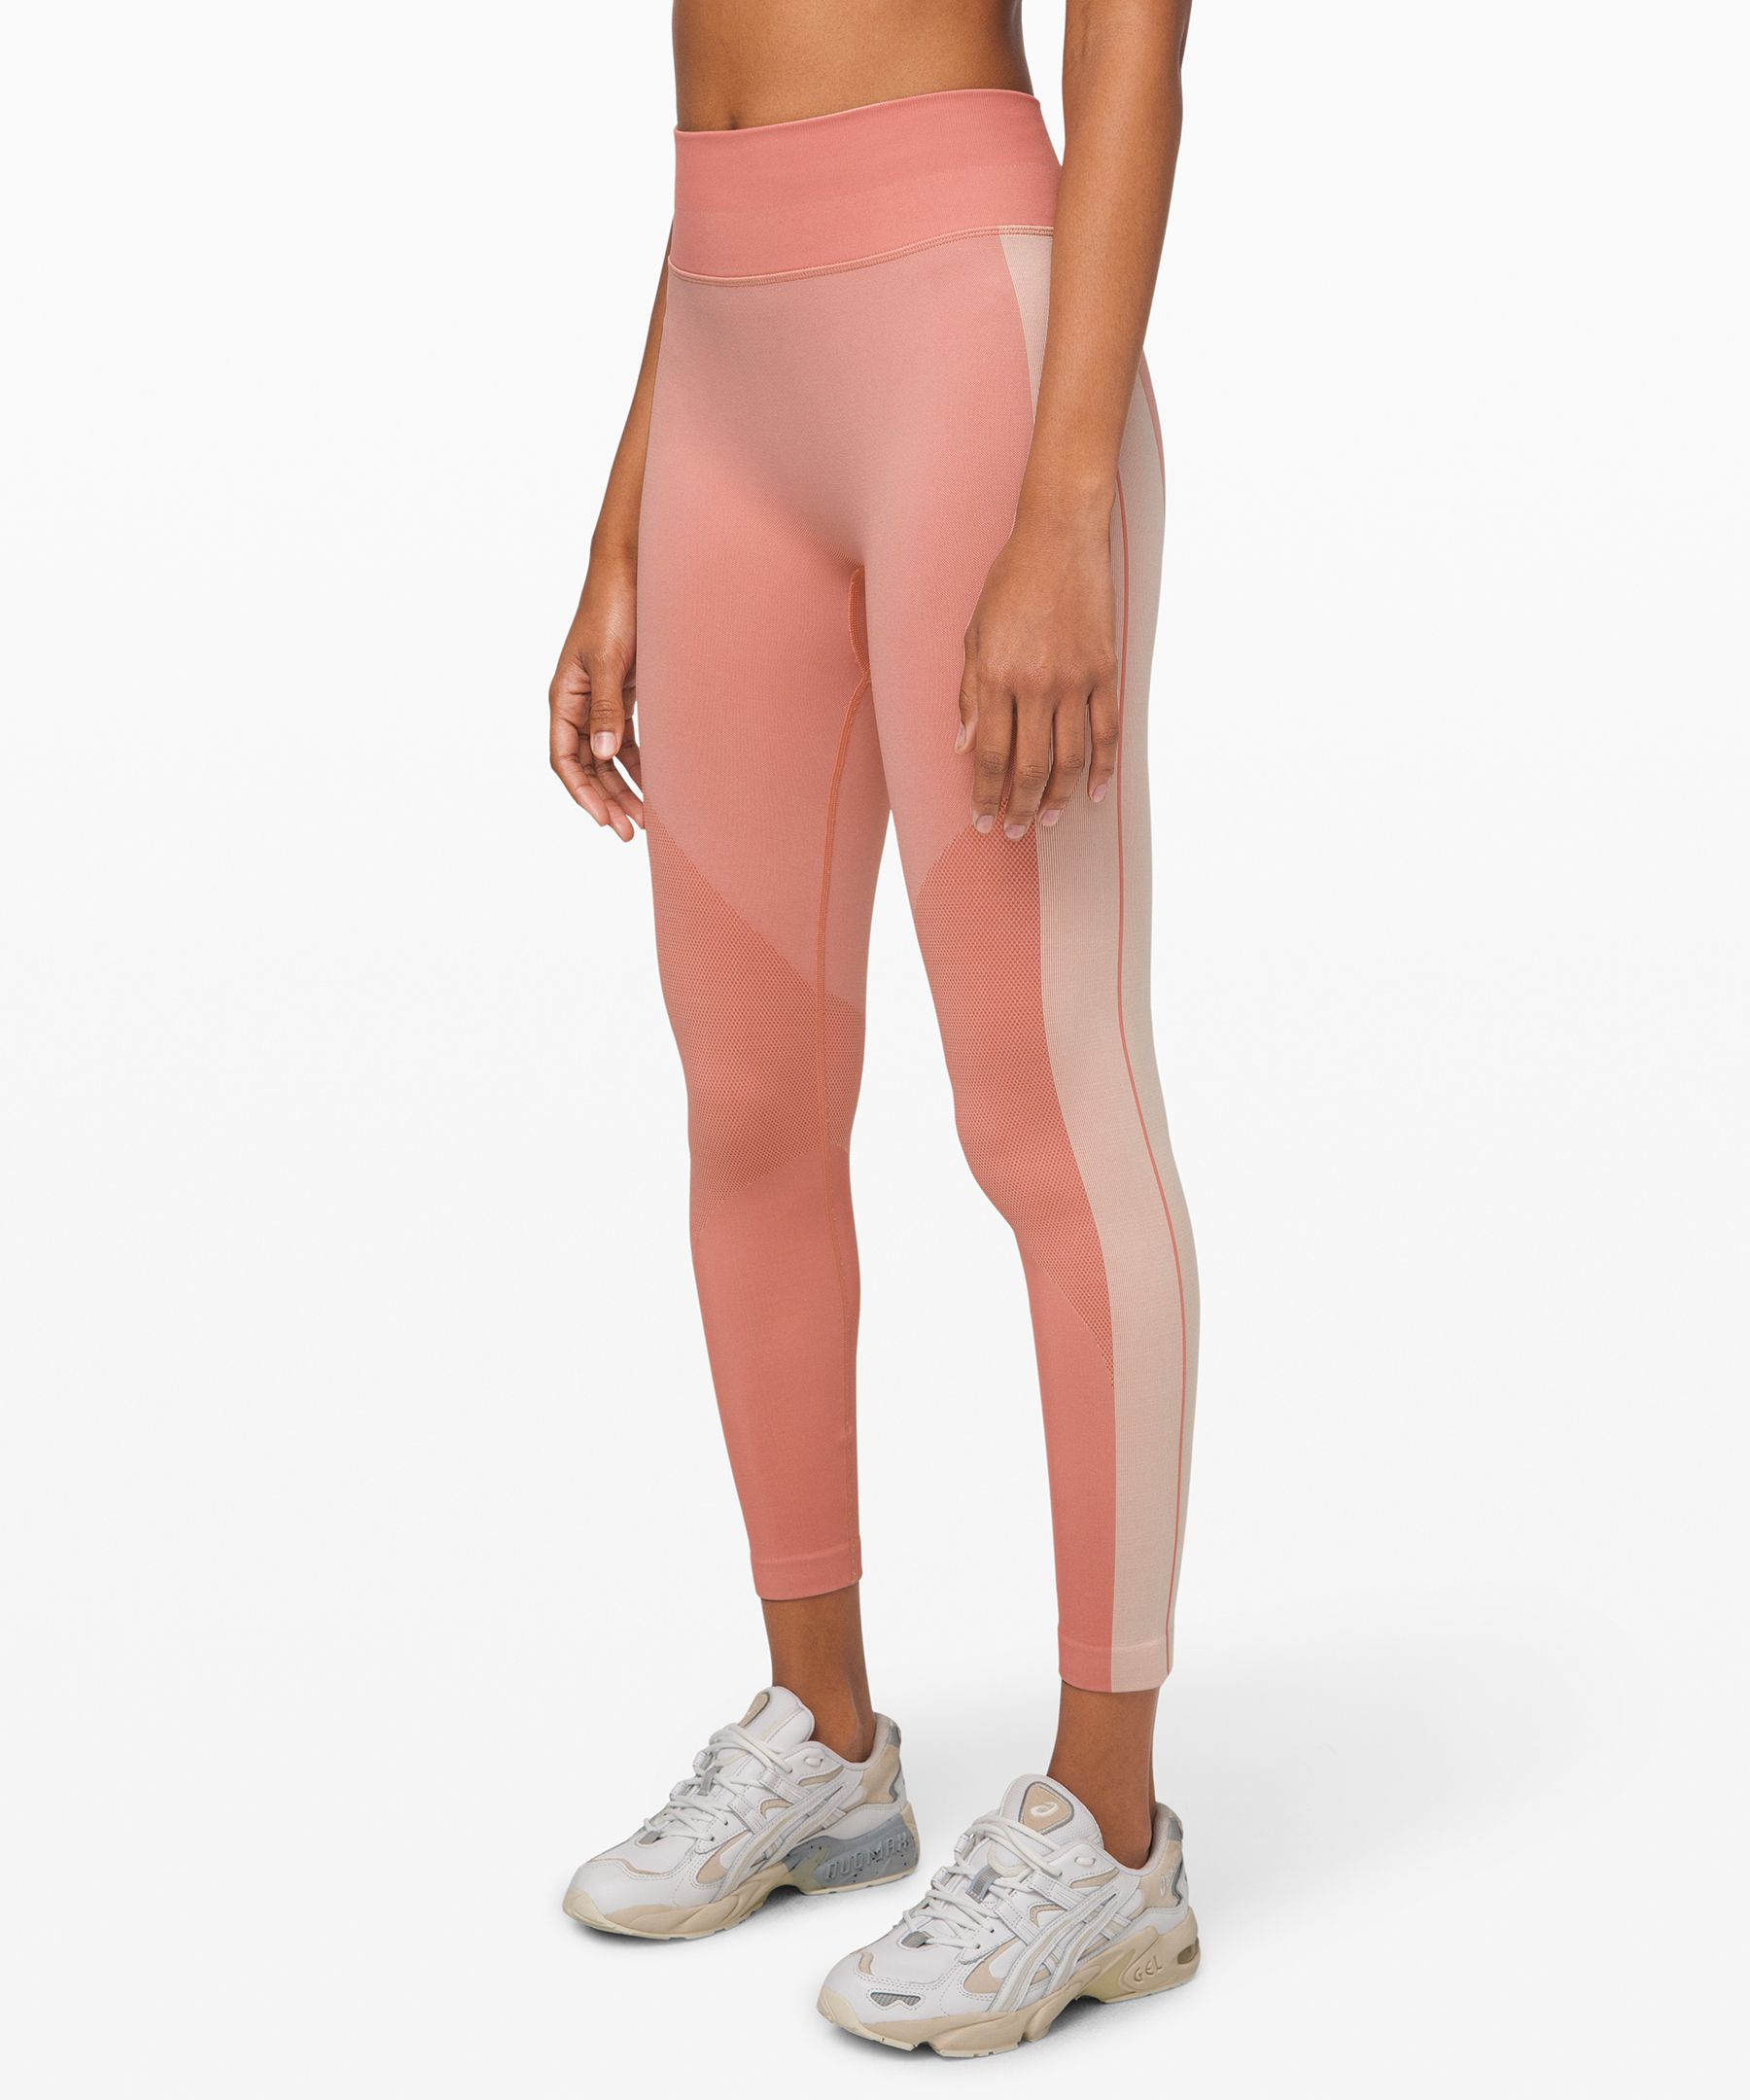 These sweat-ready tights keep  distractions to a minimum so  you can feel comfy and  confident during dynamic  classes.